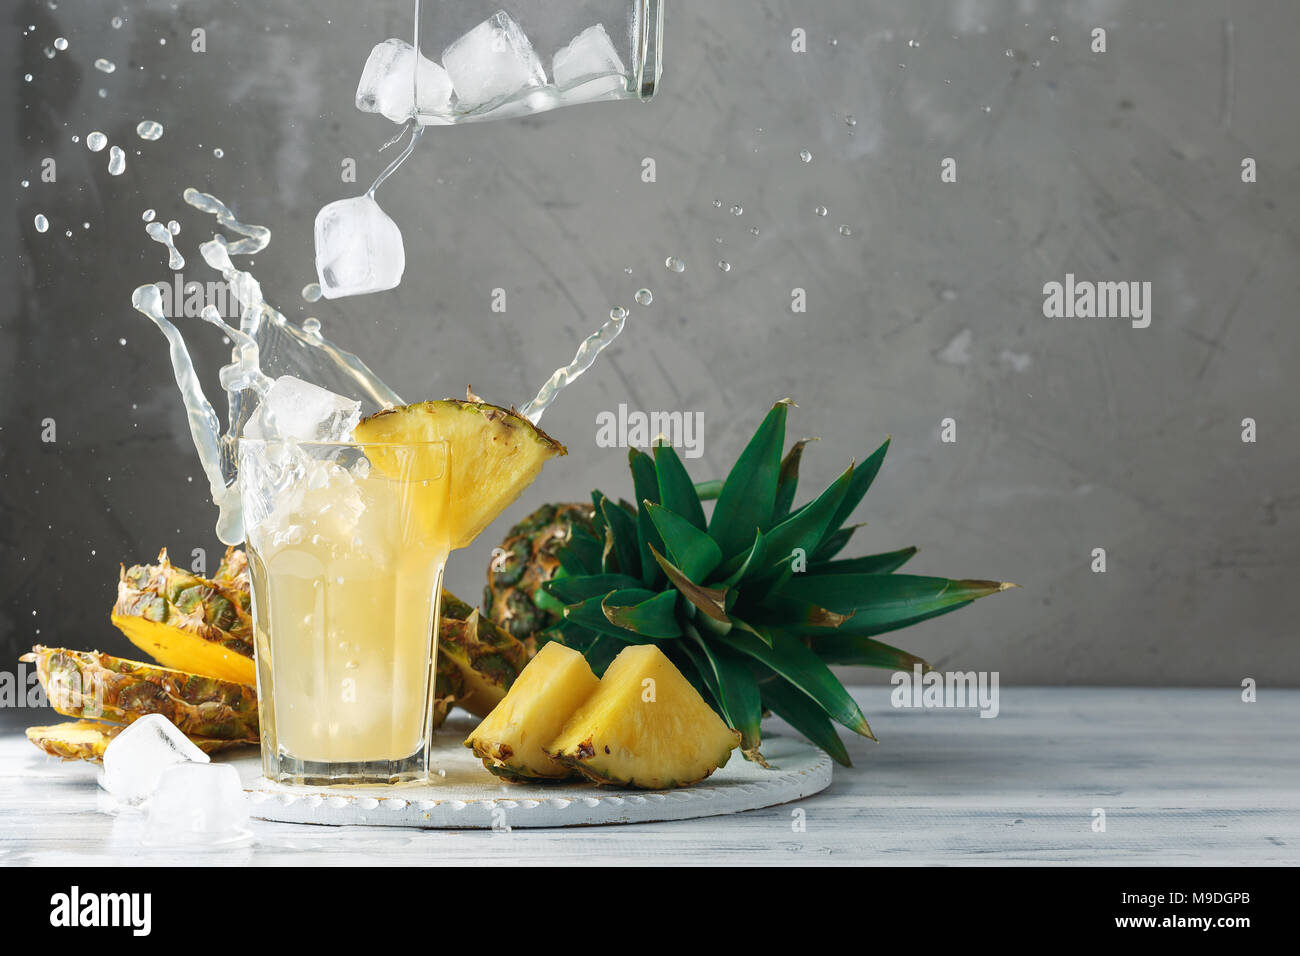 Pineapple fresh juice with falling ice cubes making splash. Cut fruit slices on wooden table and grey concrete background, front view - Stock Image